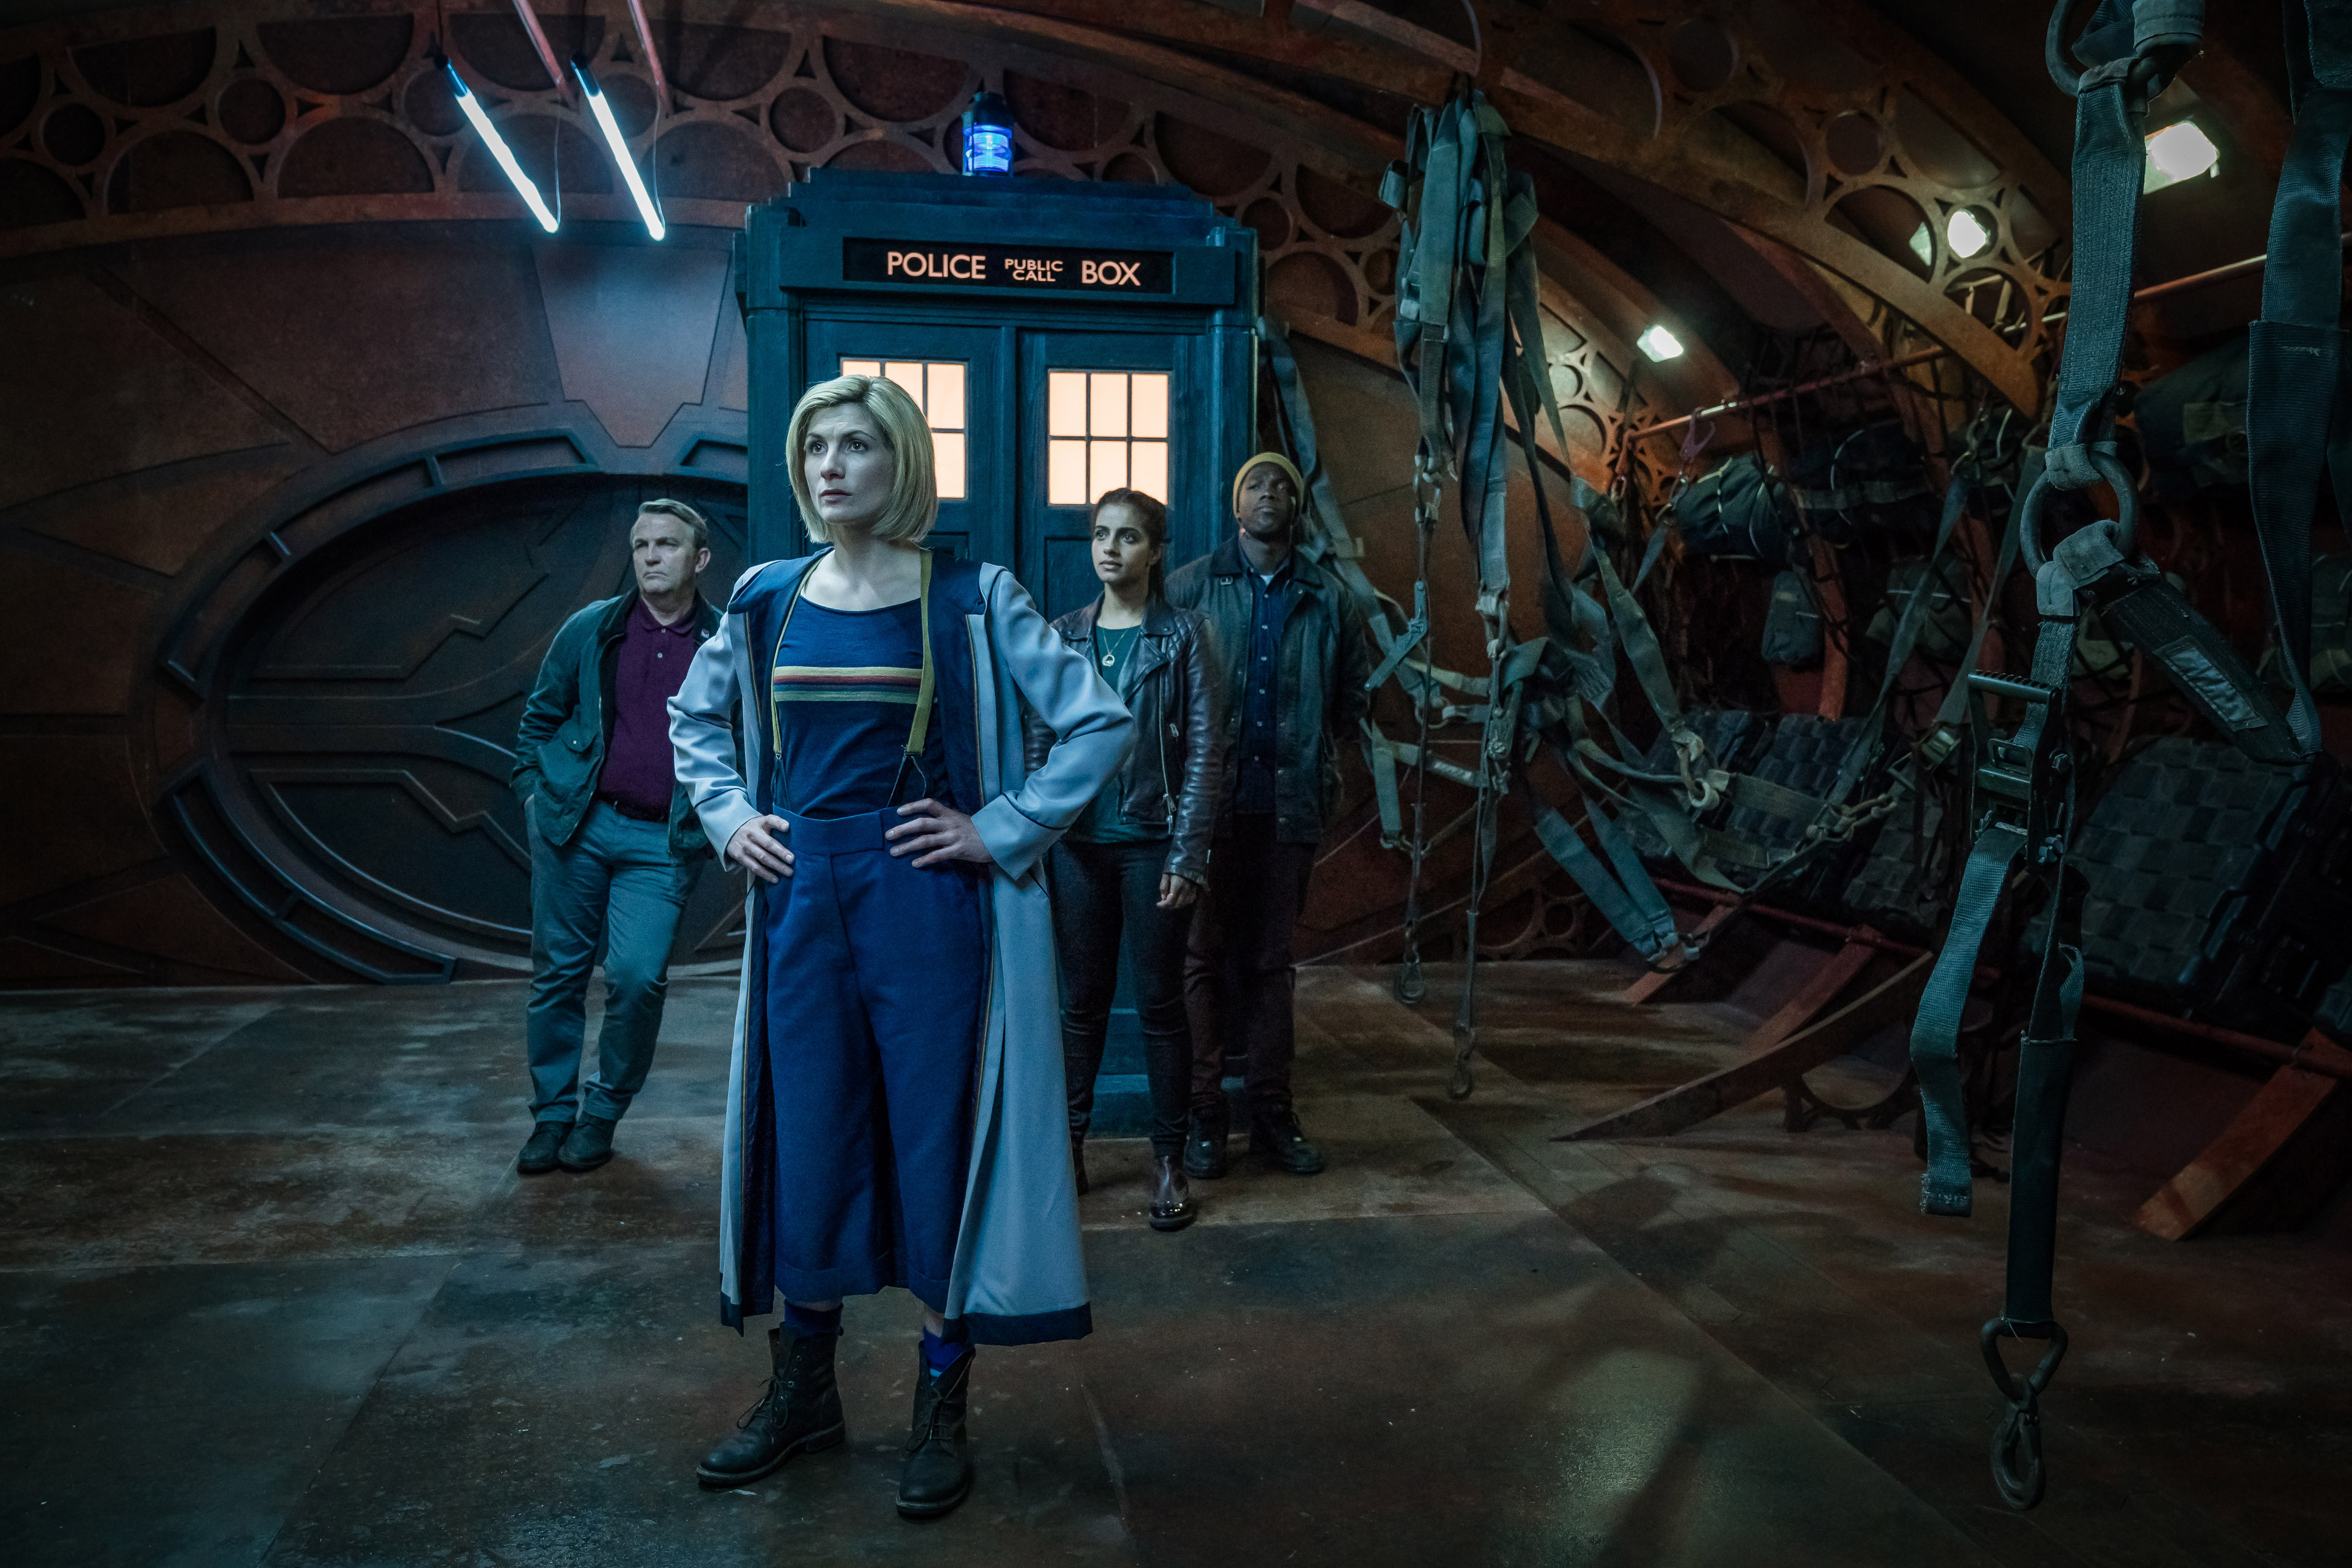 Doctor Who Christmas Special 2019 Stream HBO Max Will Be Streaming Home of Doctor Who, License BBC Shows